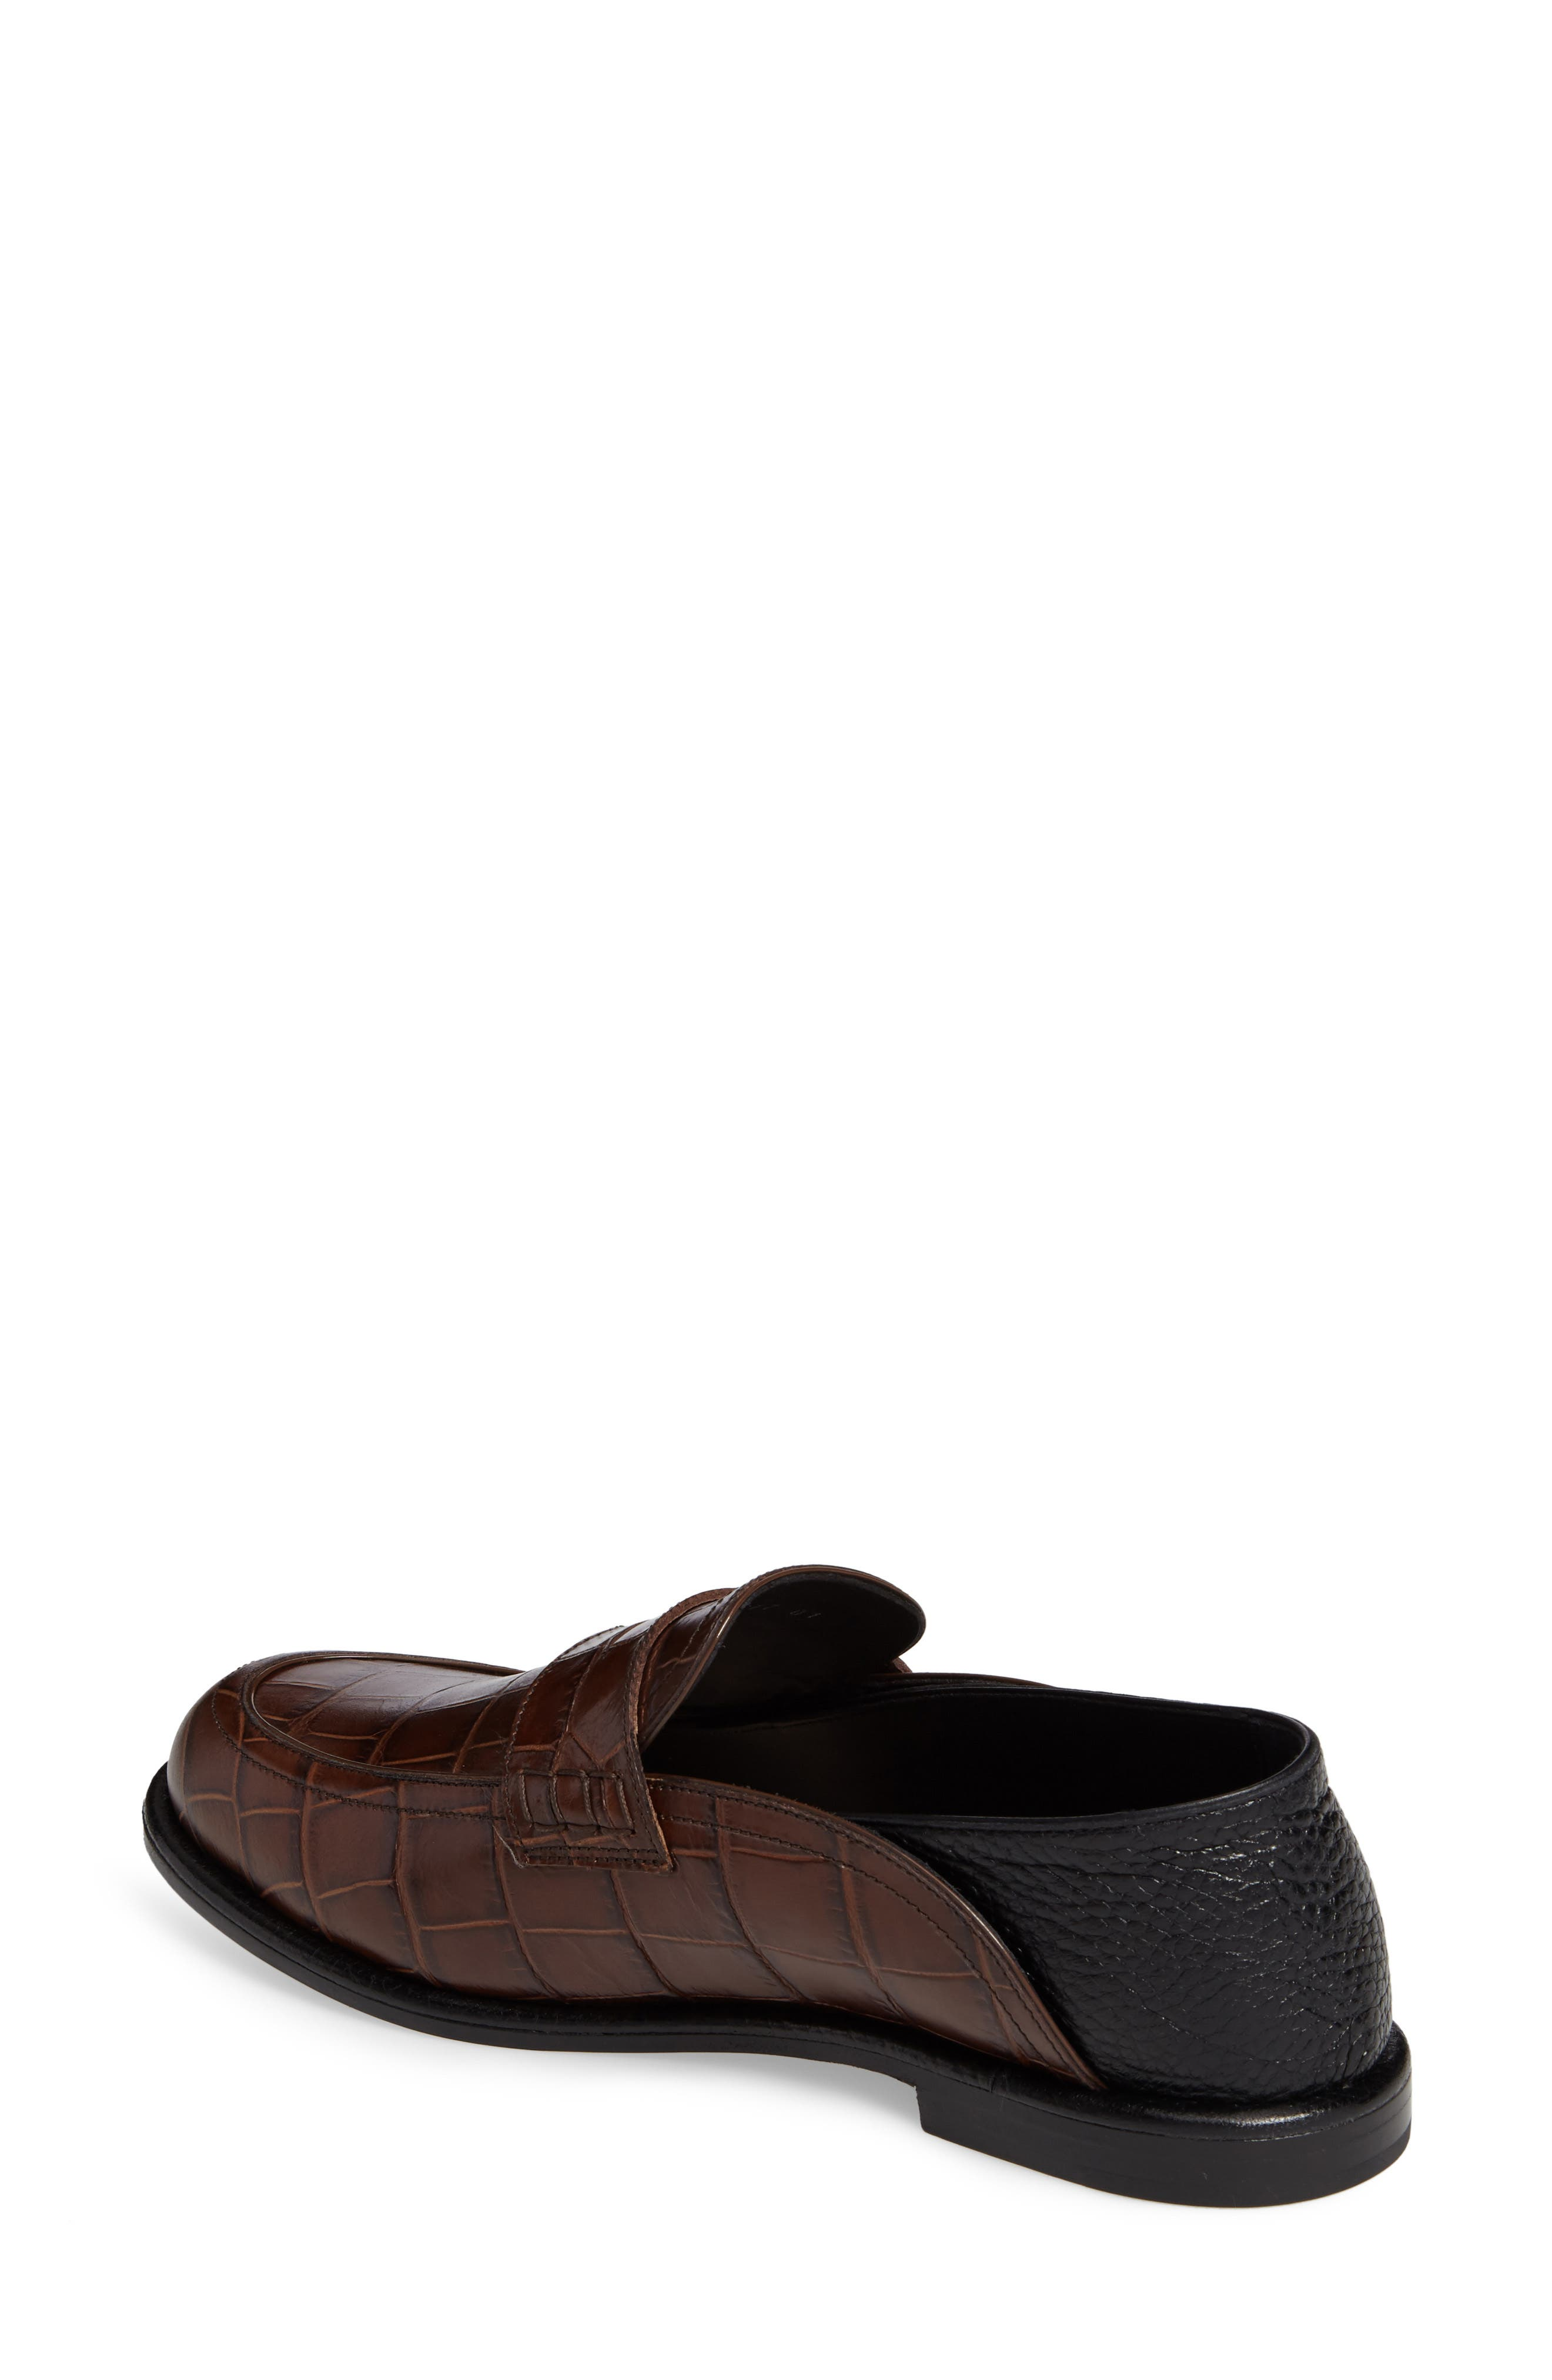 Croc Embossed Convertible Loafer,                             Alternate thumbnail 4, color,